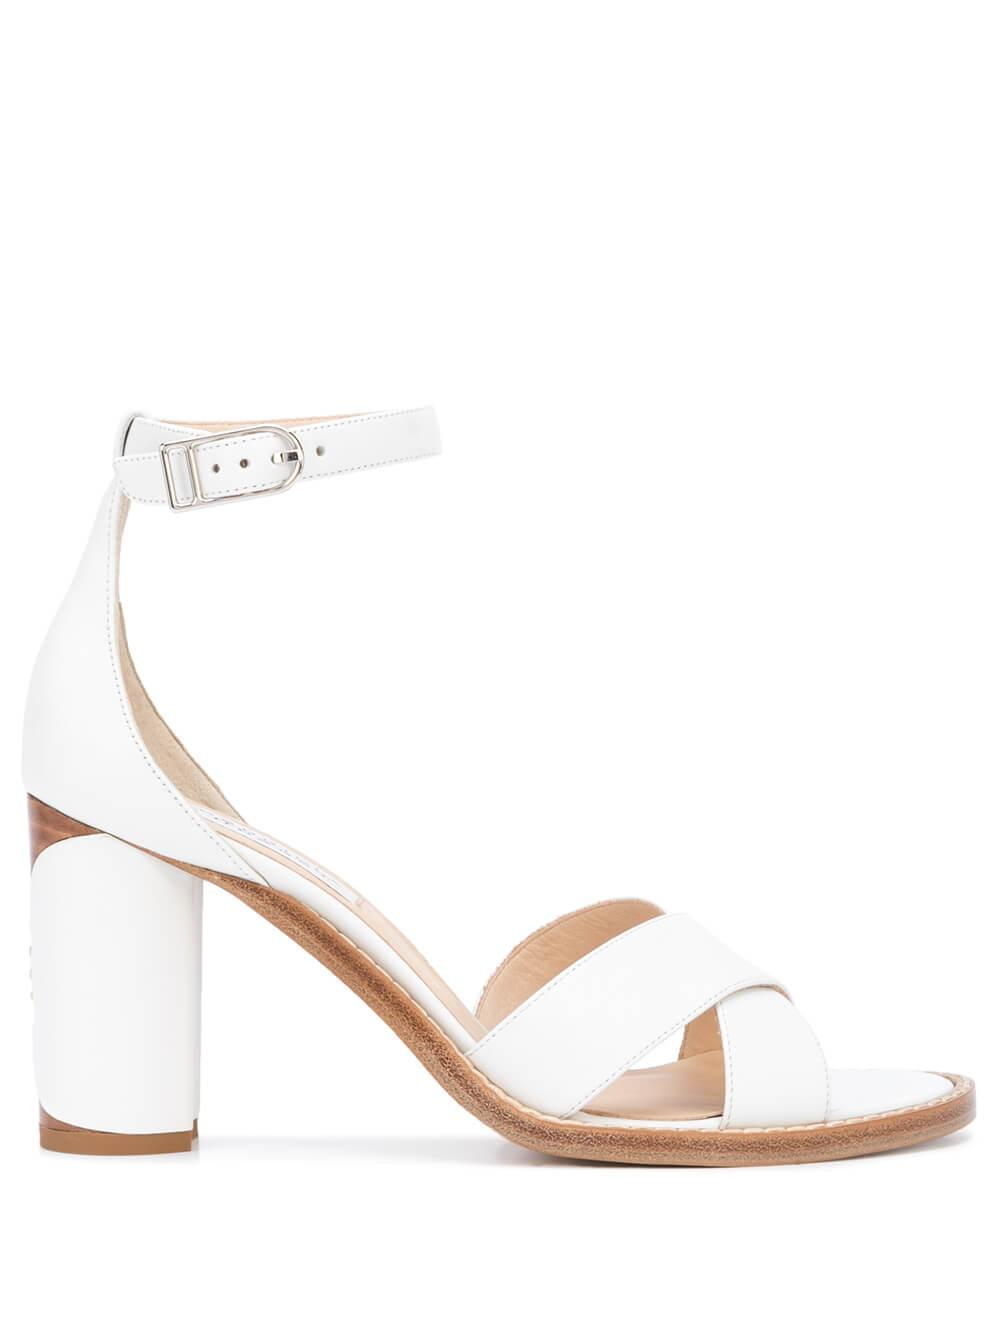 John 80mm Block Heel Sandal With Ankle Strap